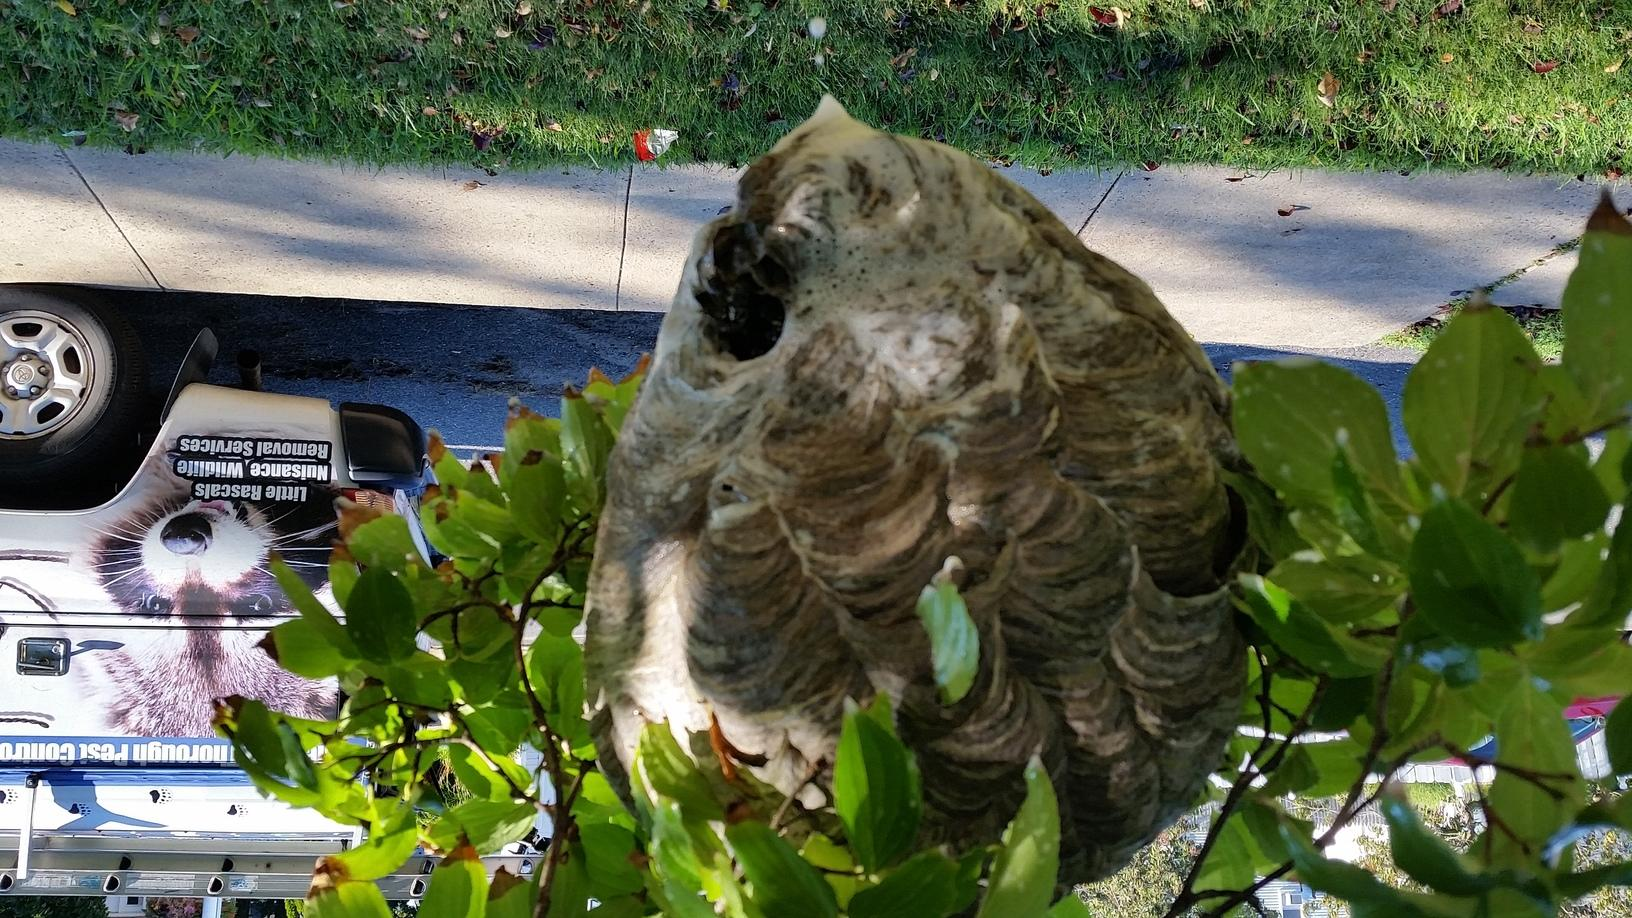 Bald faced hornets nest in Iselin, New Jersey